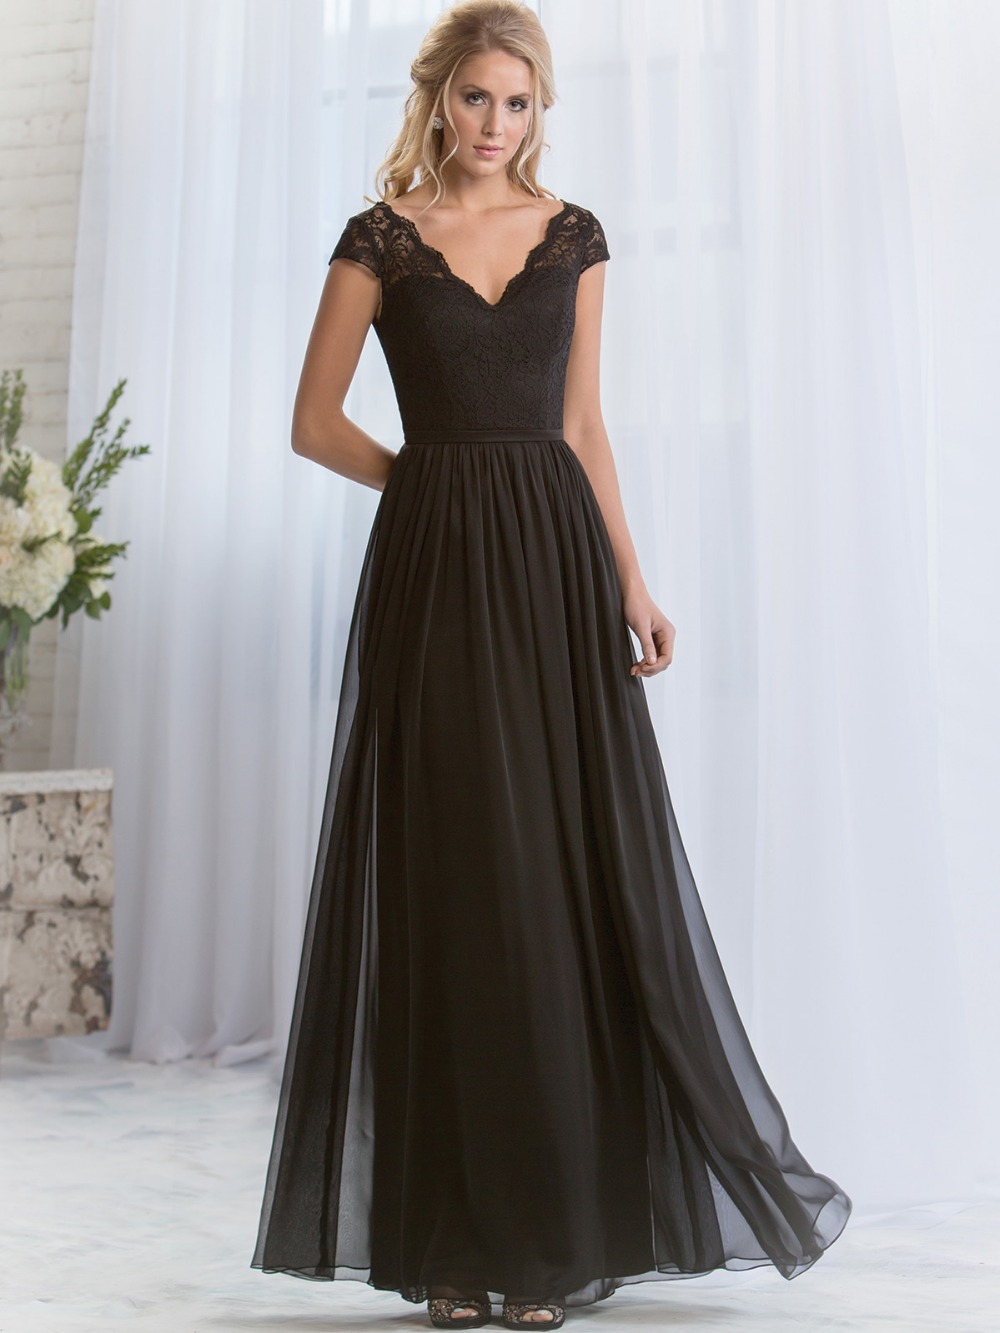 High Quality Long Black Chiffon Bridesmaid Dresses-Buy Cheap Long ...